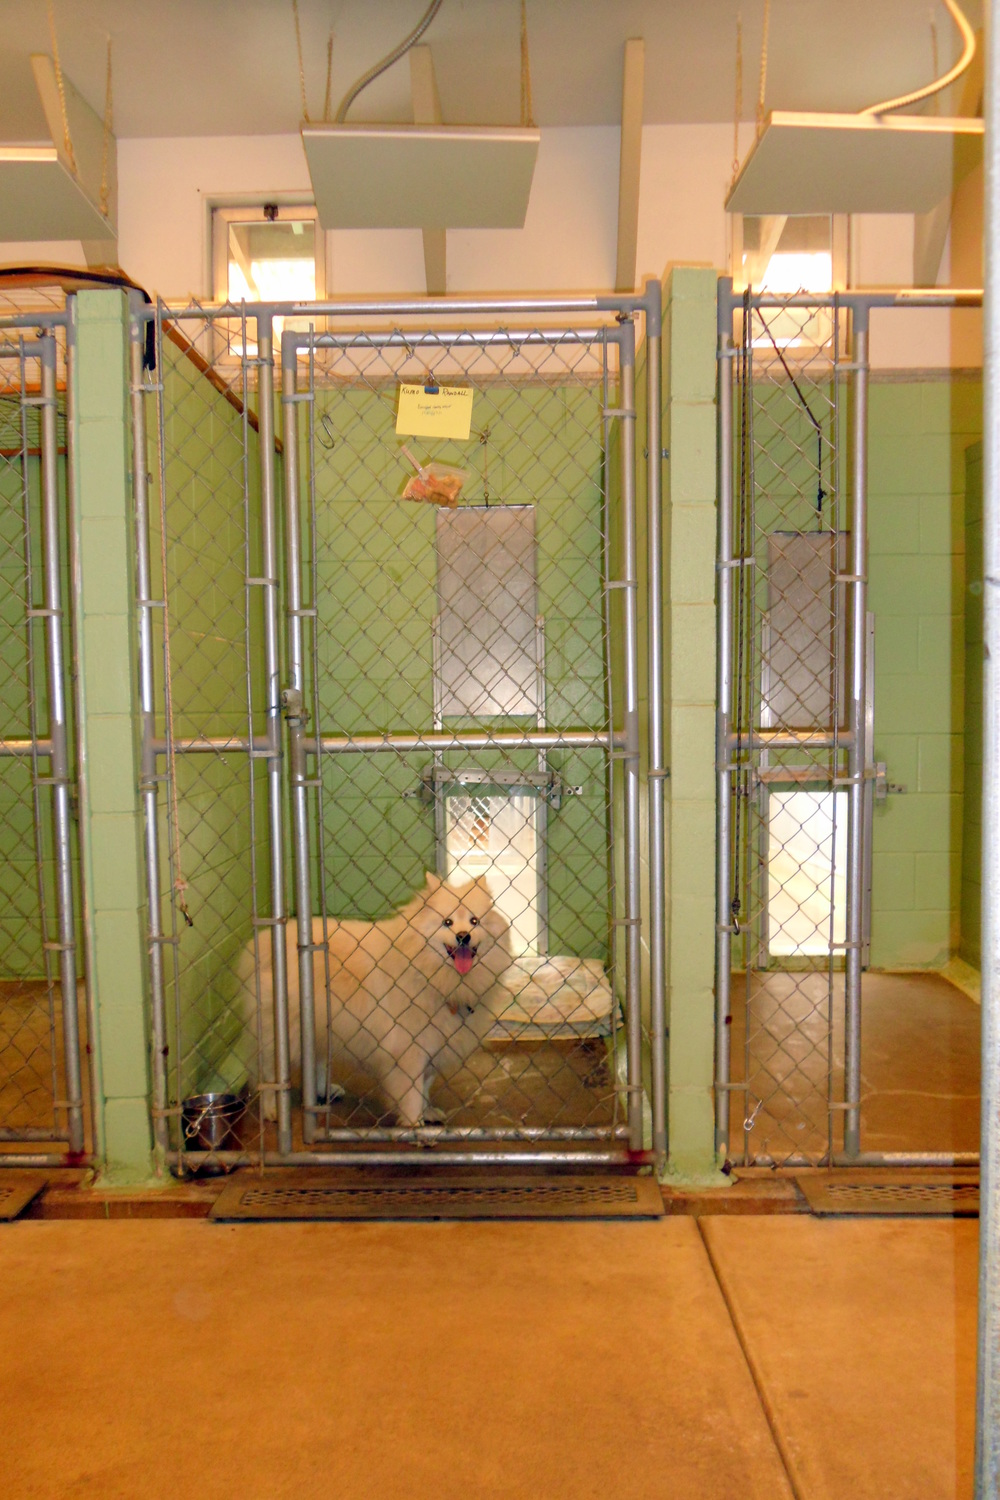 Kennel Indoors